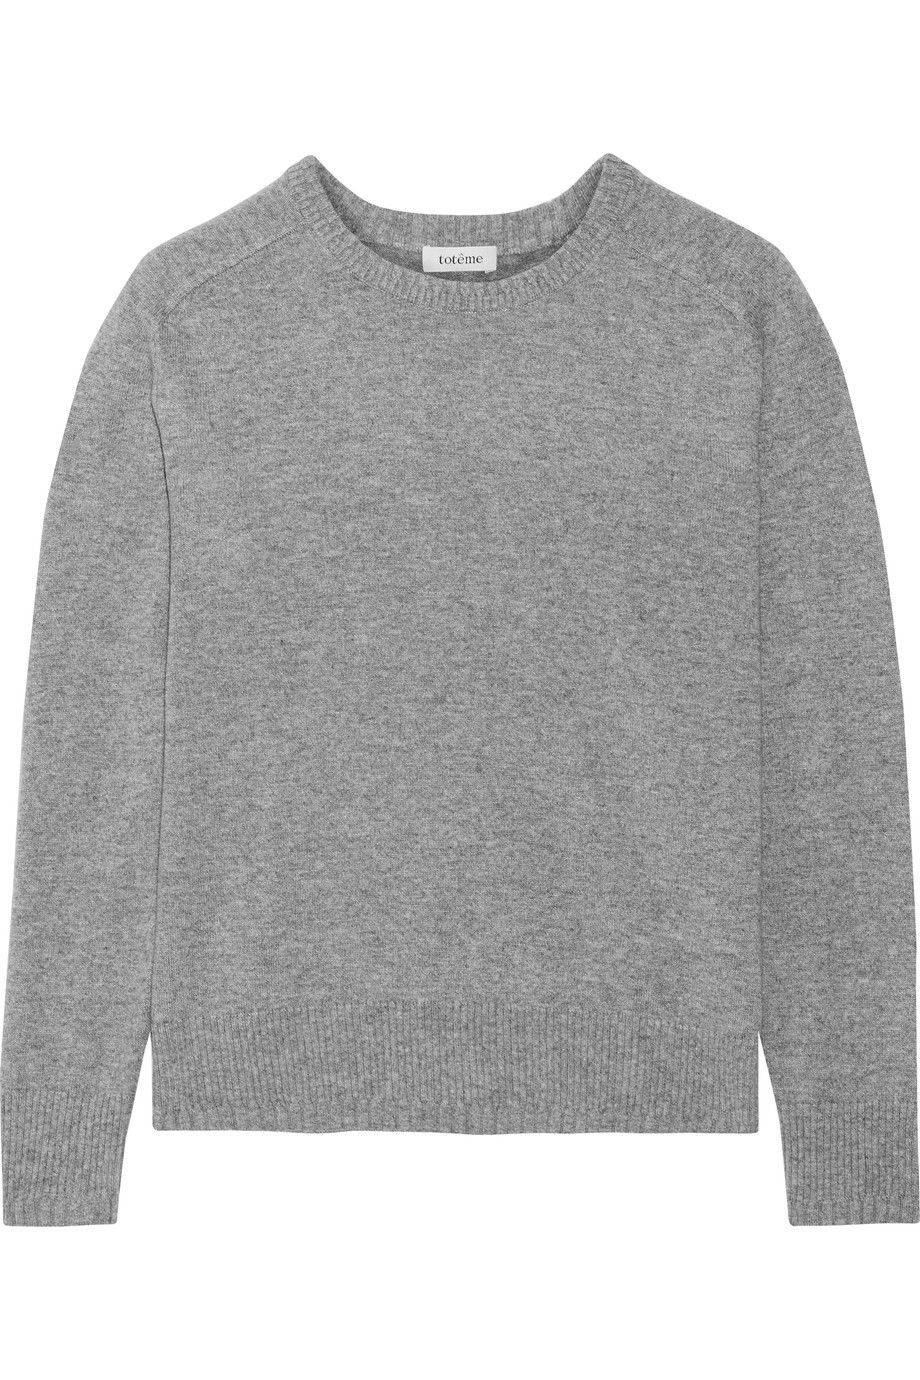 TOTÊME . #totême #cloth #sweater | Totême | Pinterest | Verona ...